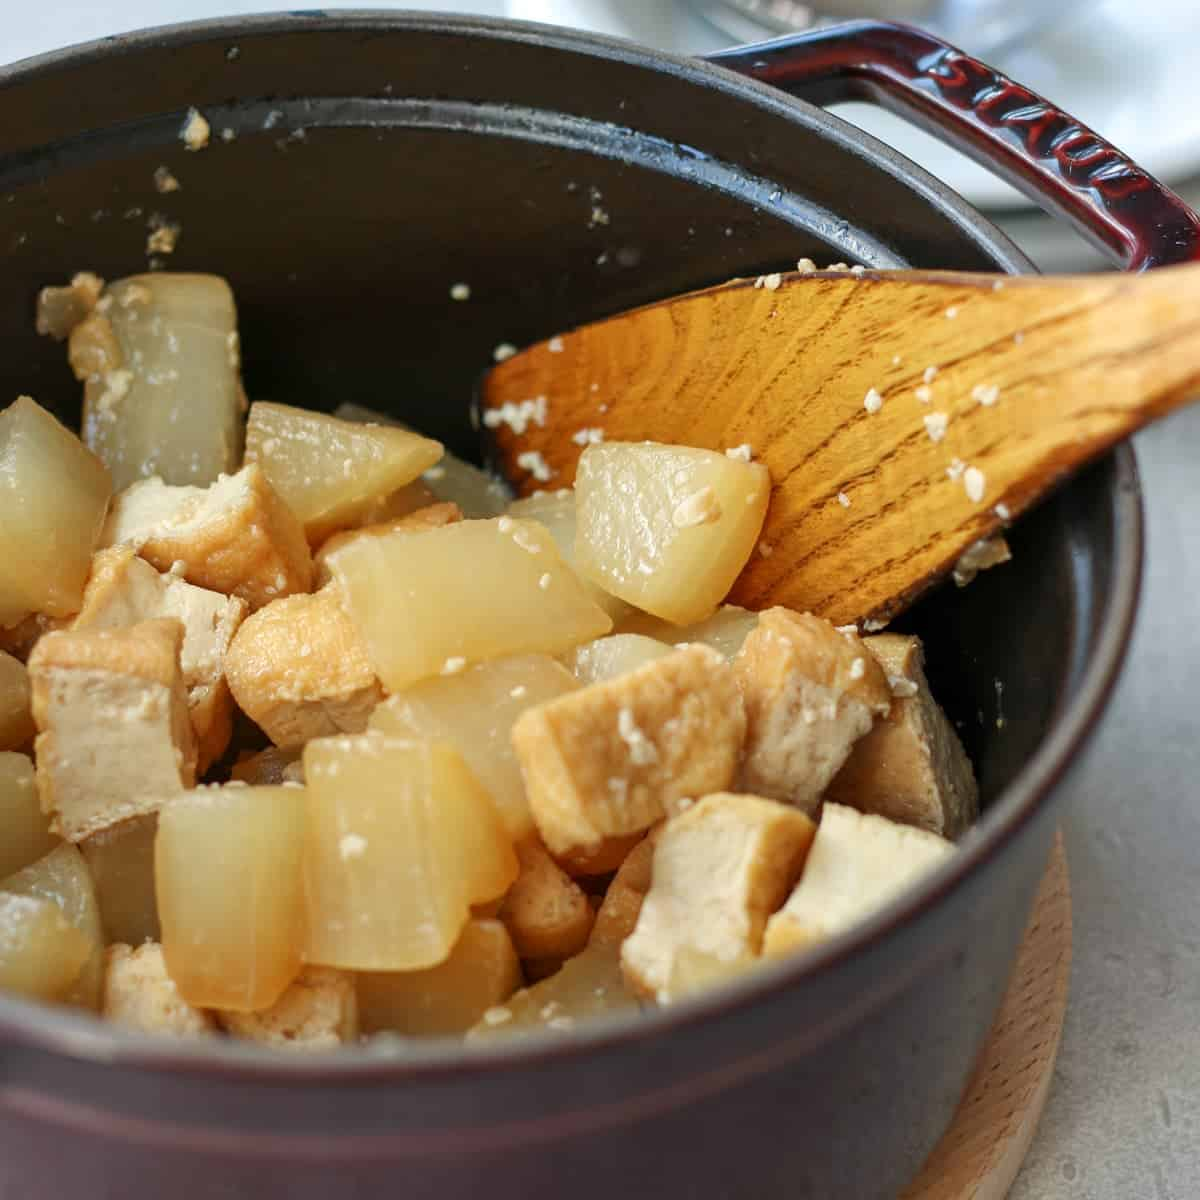 simmered daikon in a pot with spatula